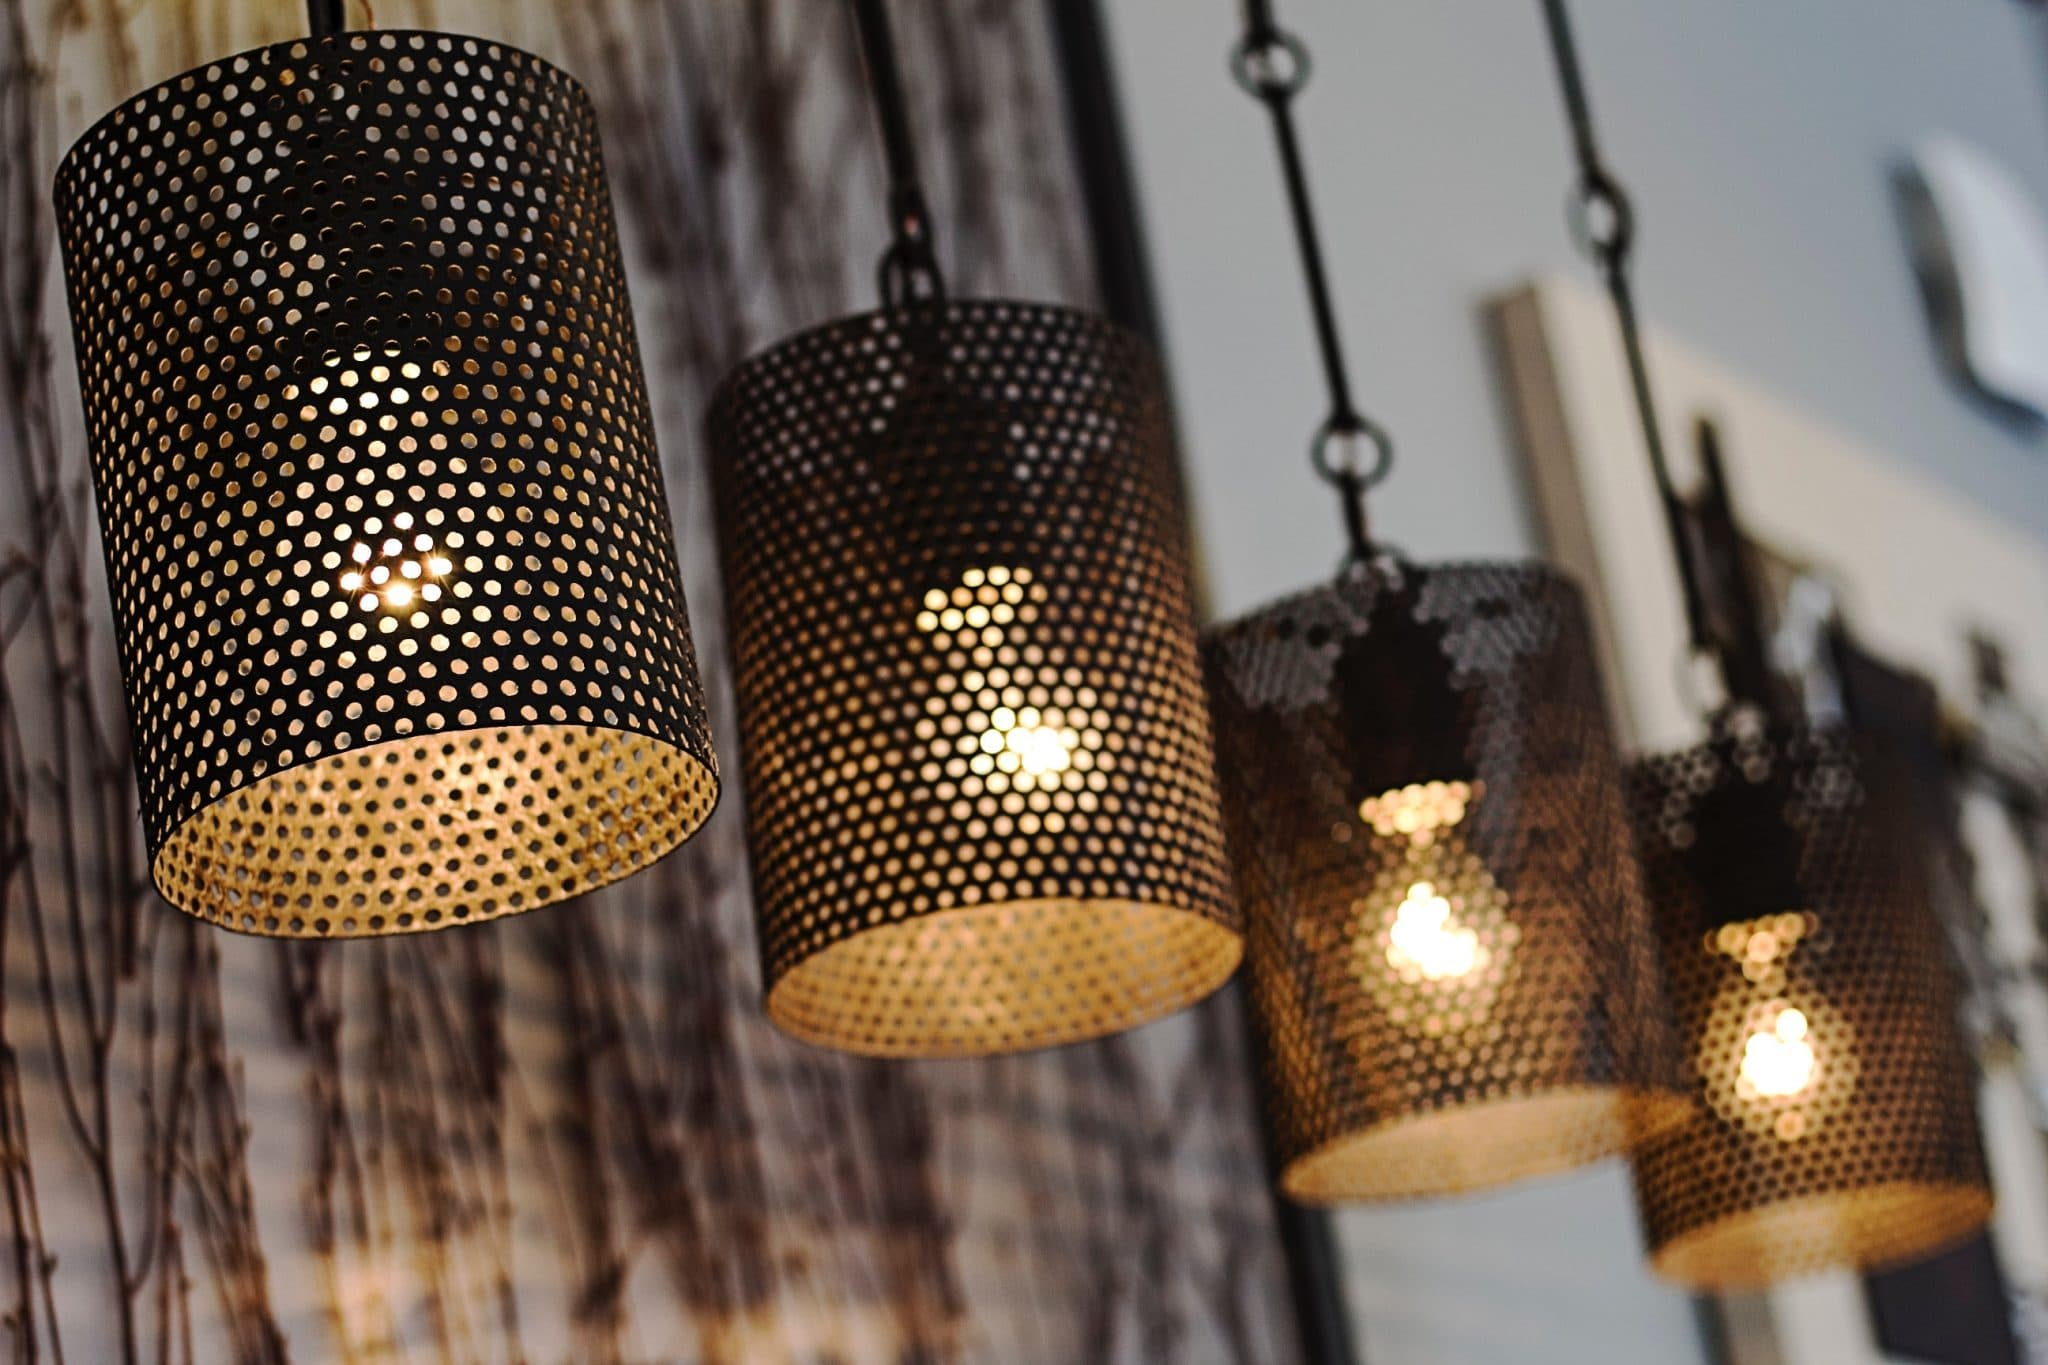 perforated metal in lighting industry, branko perforating, custom metal perforating